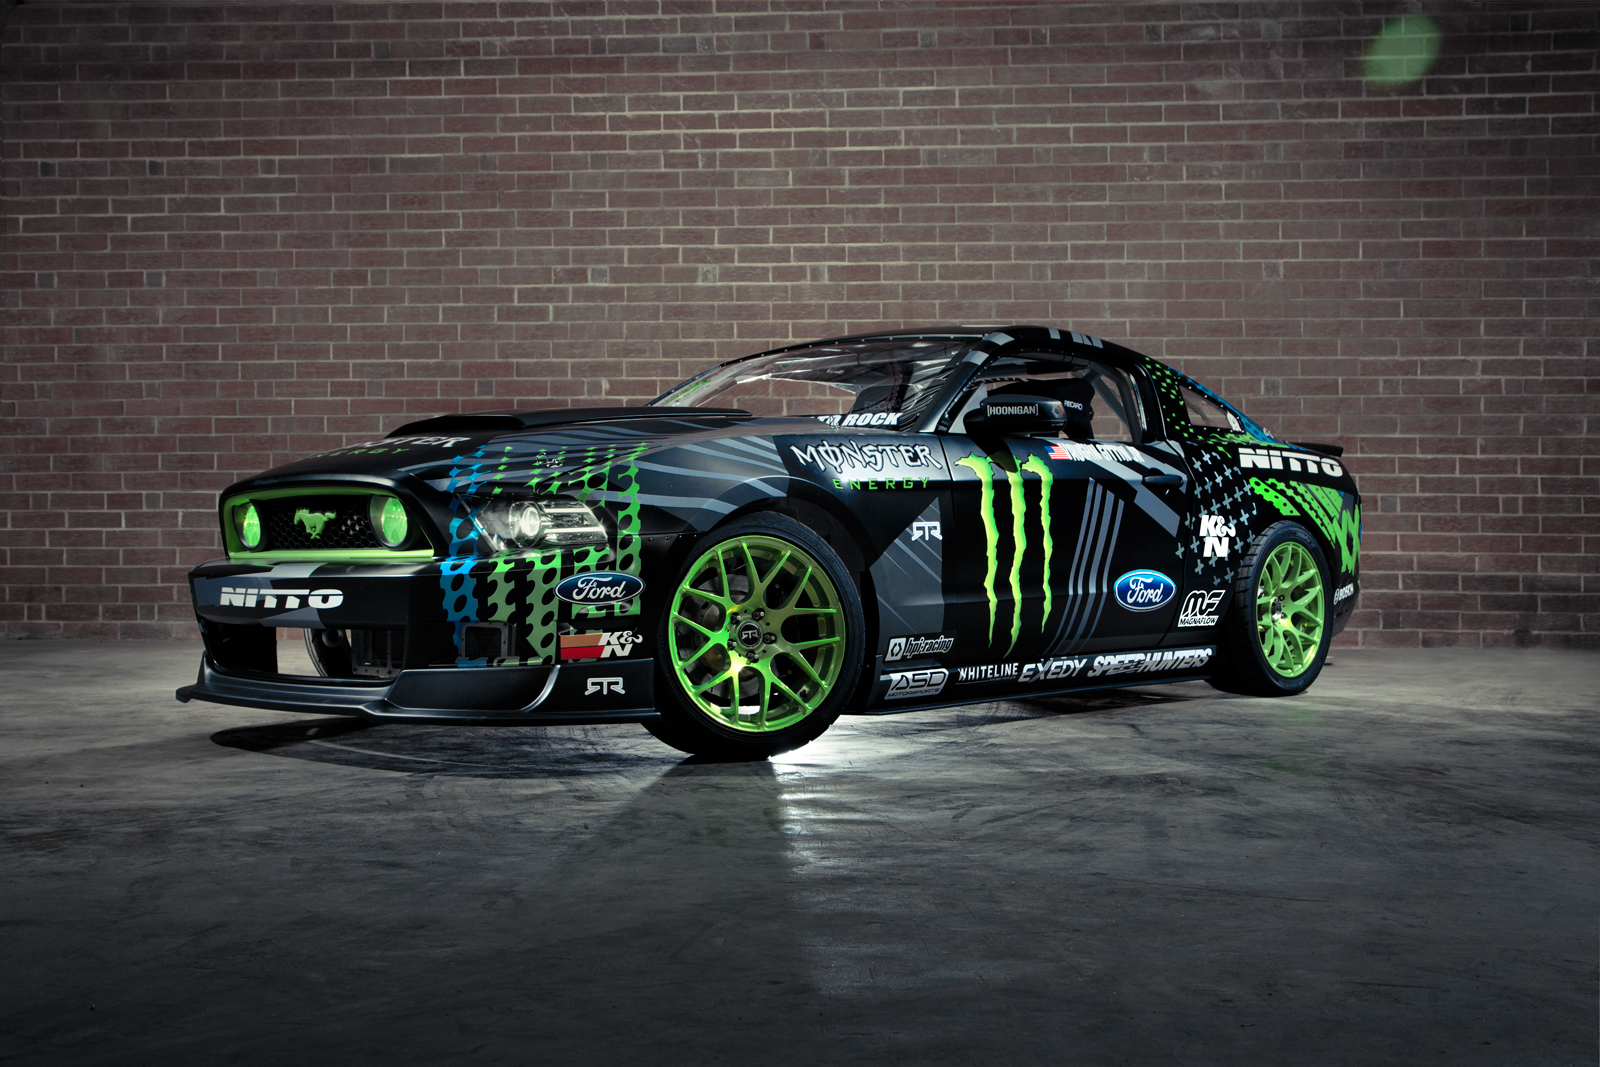 Vgjr S Monster Energy Nitto Tire Mustang Rtr Speedhunters